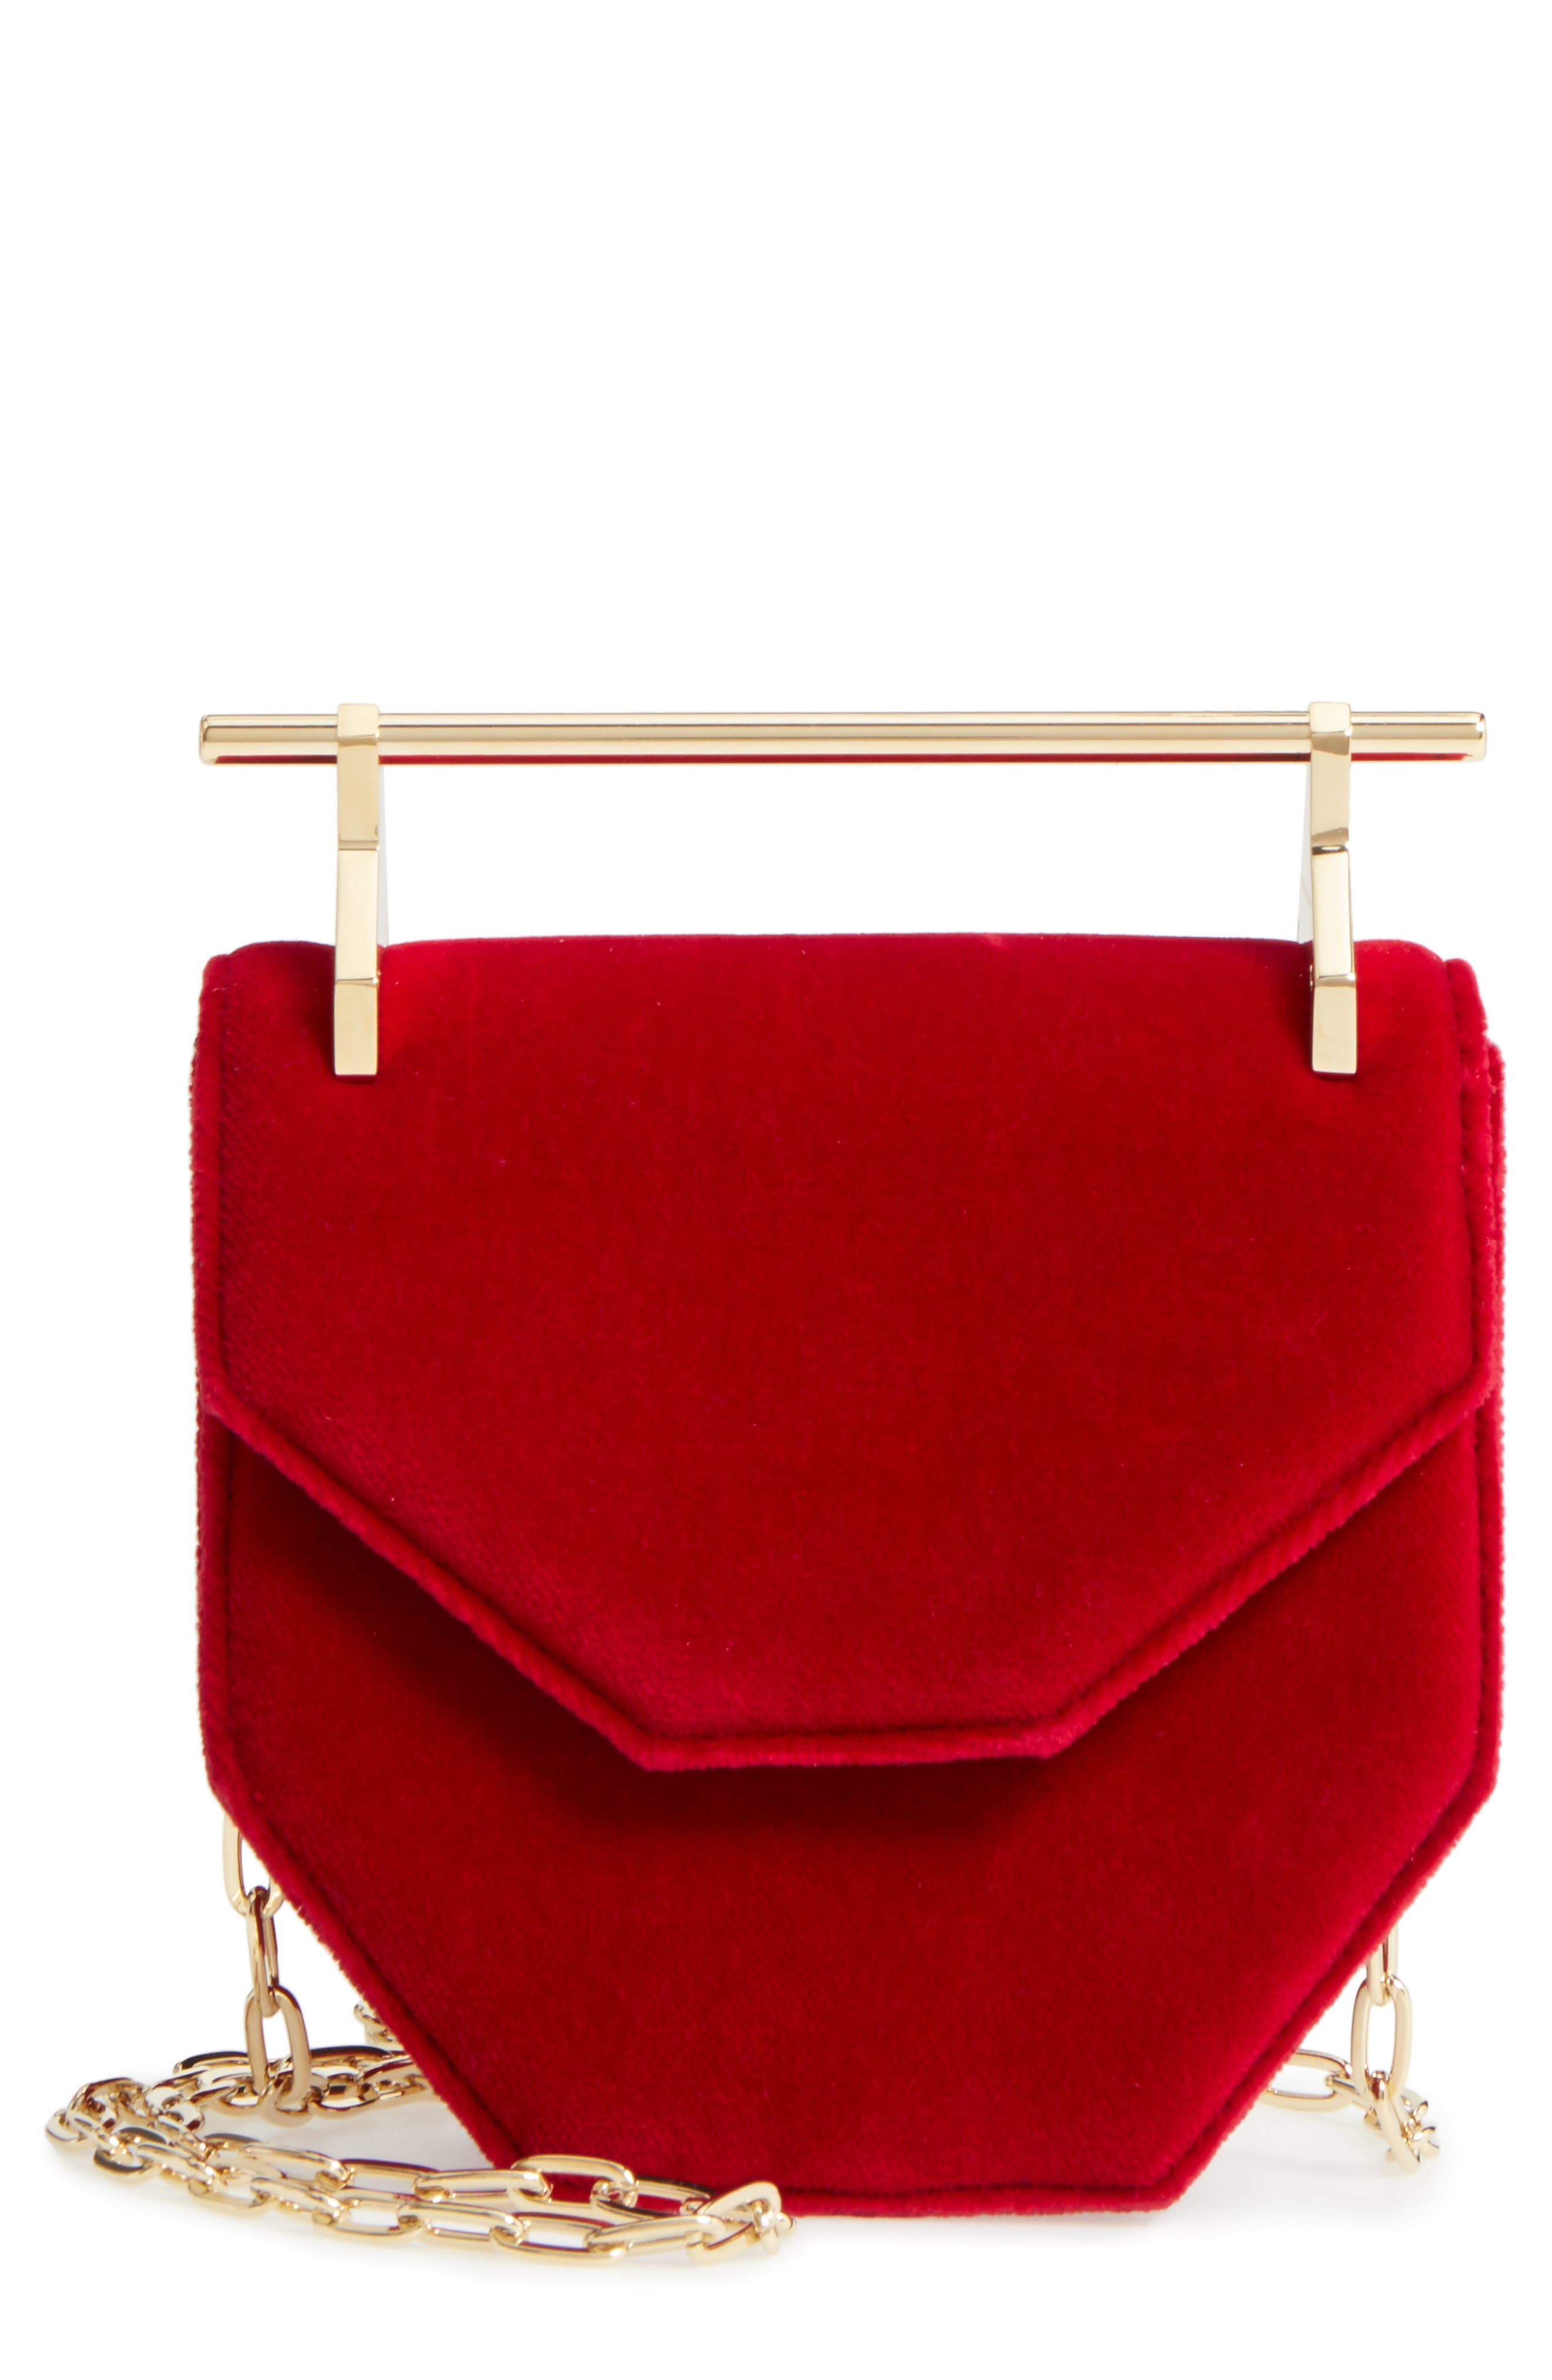 Alternate Image 1 Selected - M2Malletier Mini Amor Fati Velvet Shoulder Bag